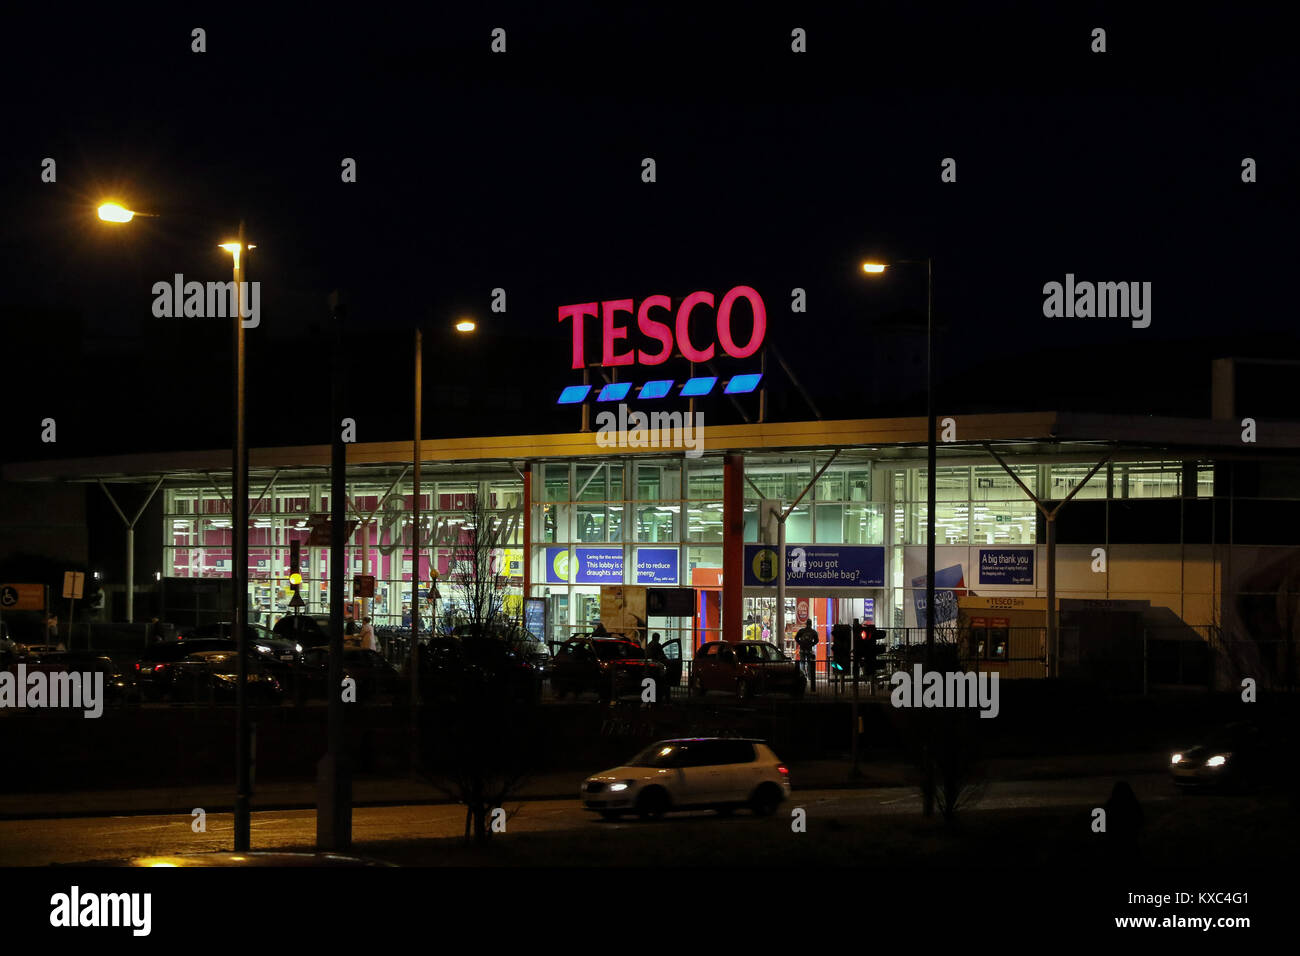 Tesco Groceries Special Offers Updating its 'Special Offers' section frequently, it's well worth taking a browse of the latest deals and discounts to see how you can save money on your shopping.